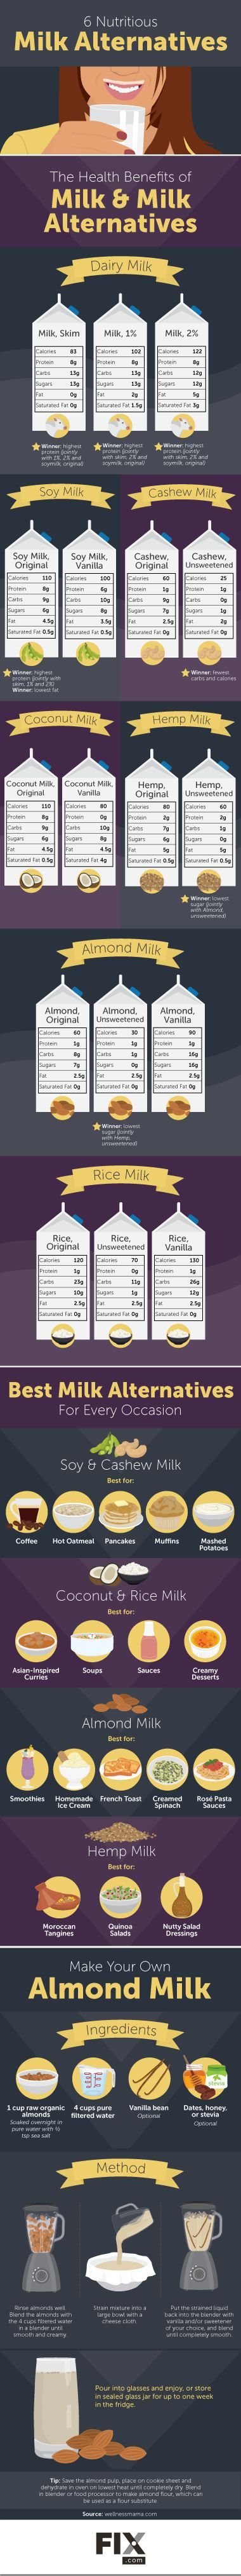 Healthy Alternatives to Dairy Milk | Fix.com